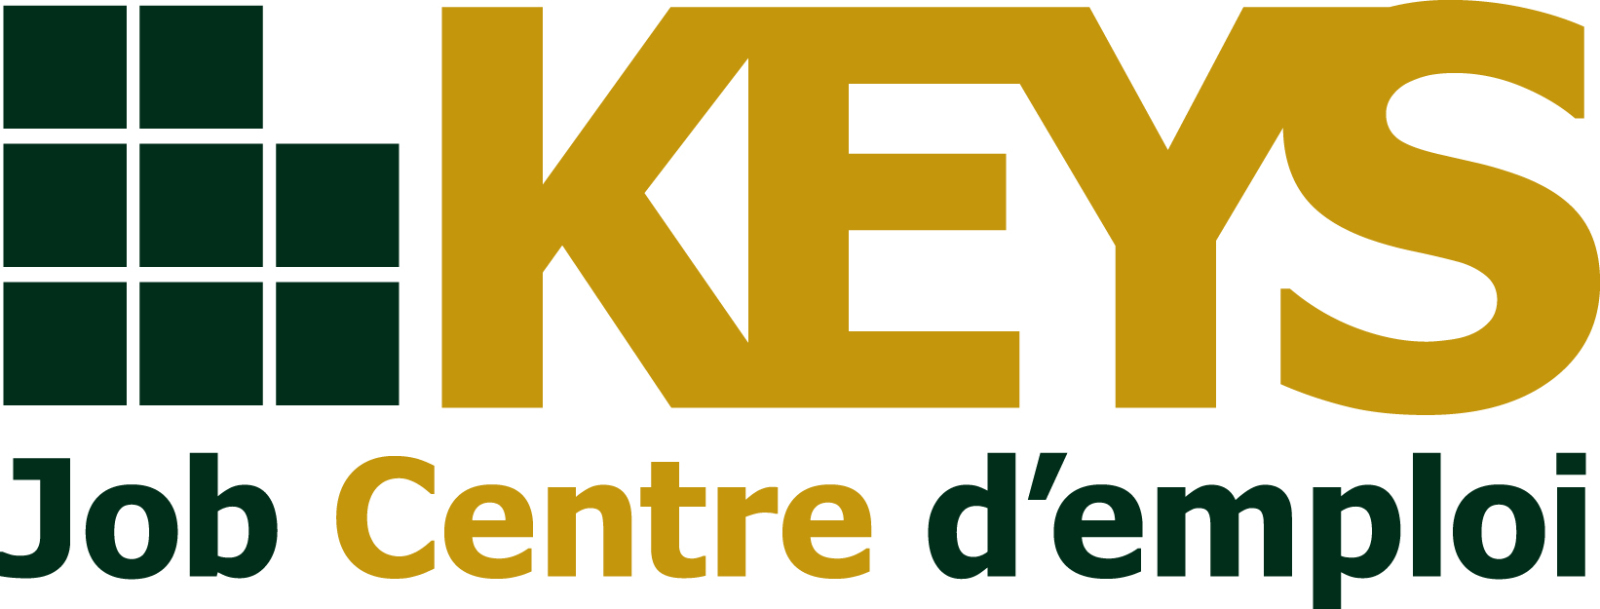 KEYS Job Centre